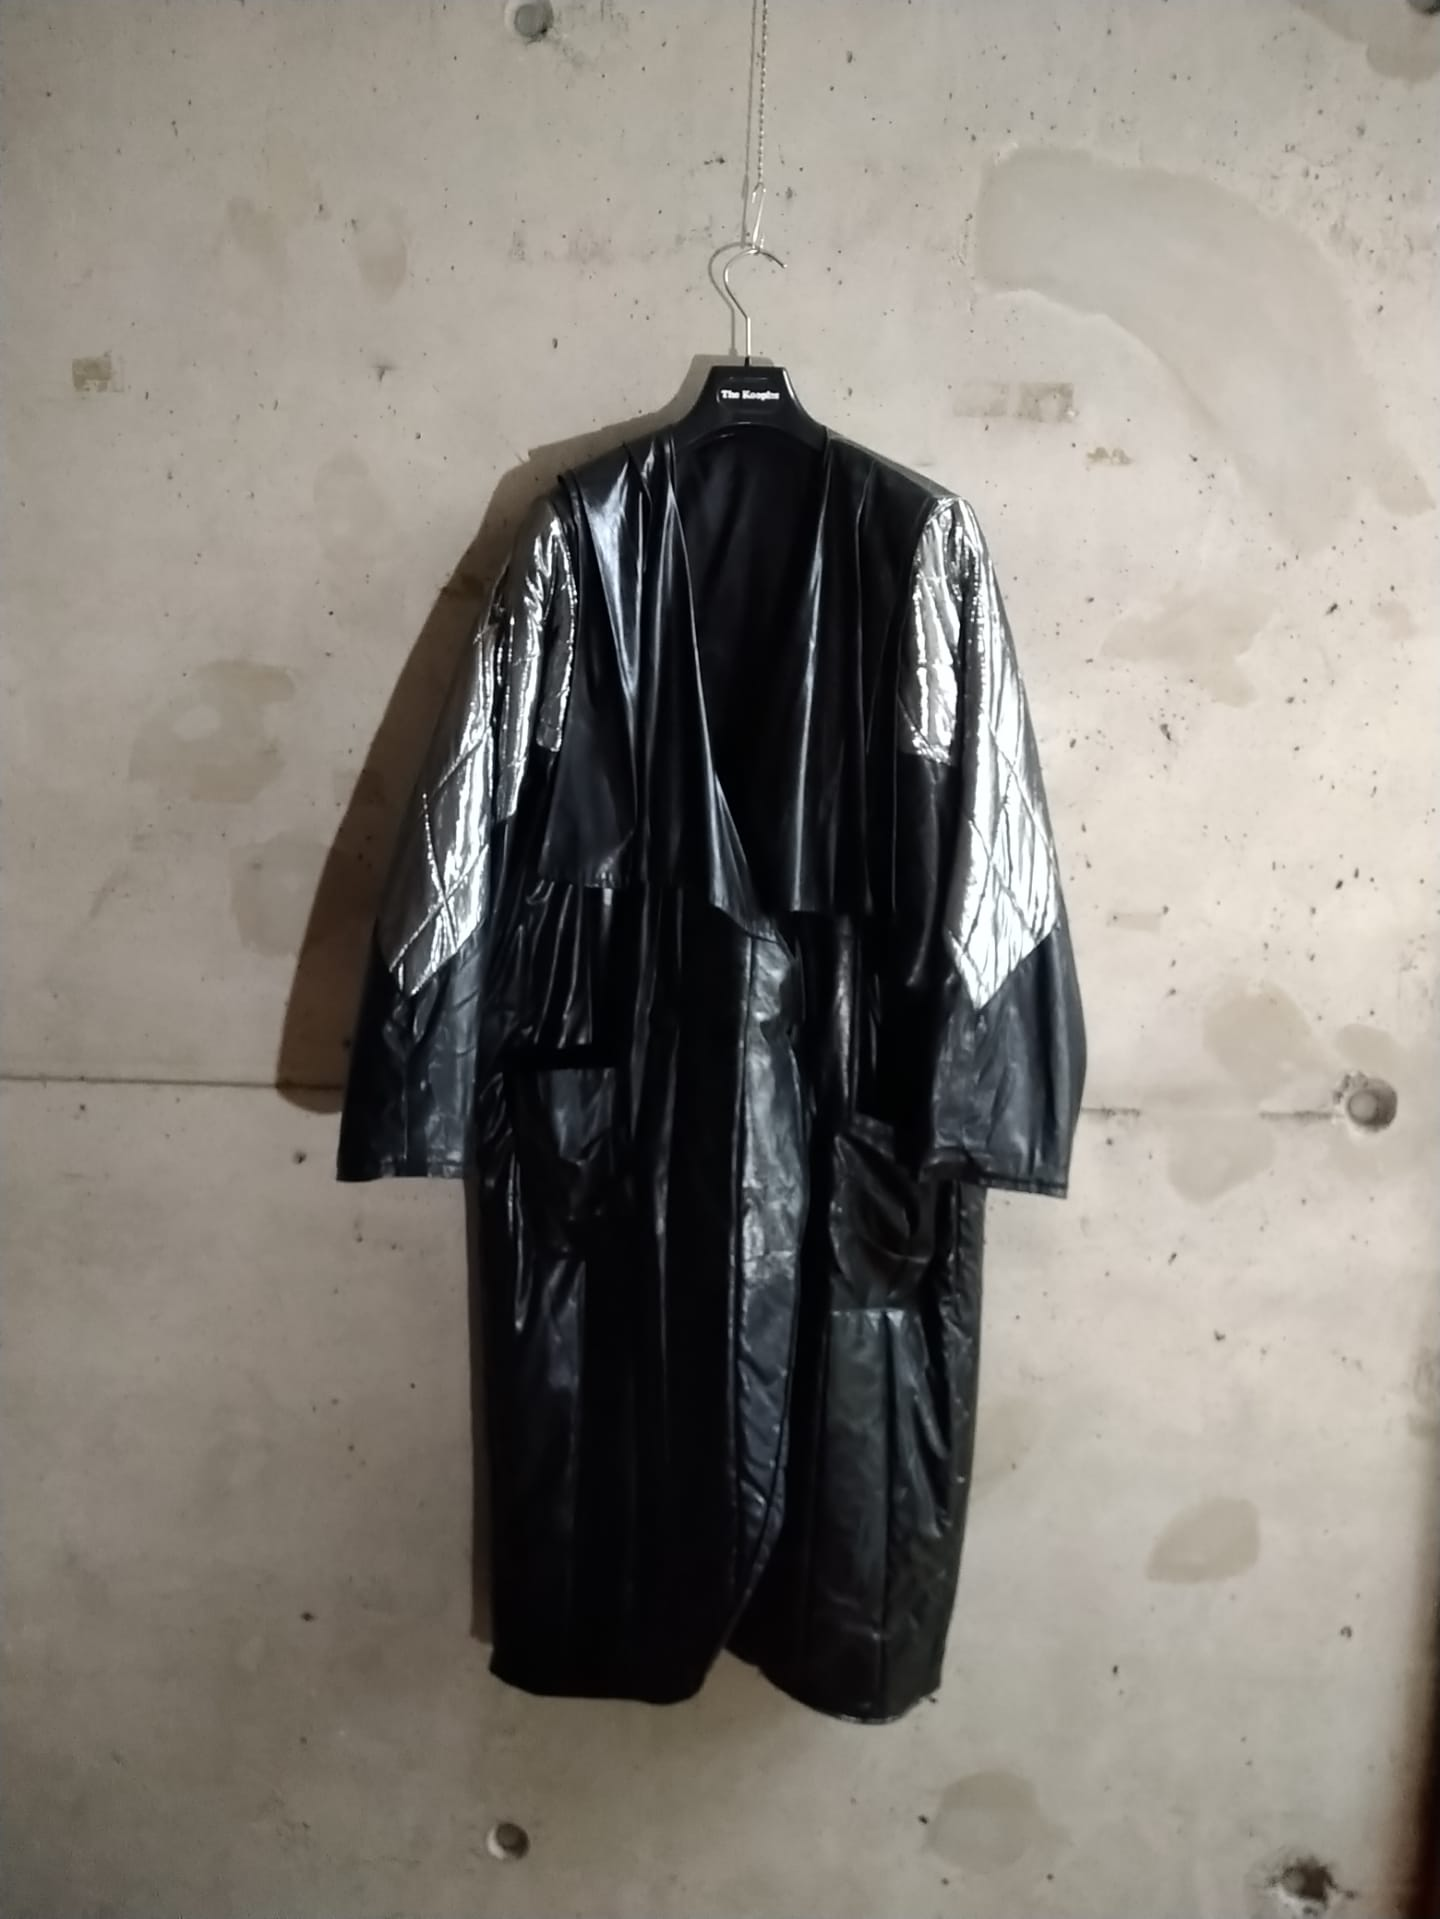 Black and silver vinyle coat